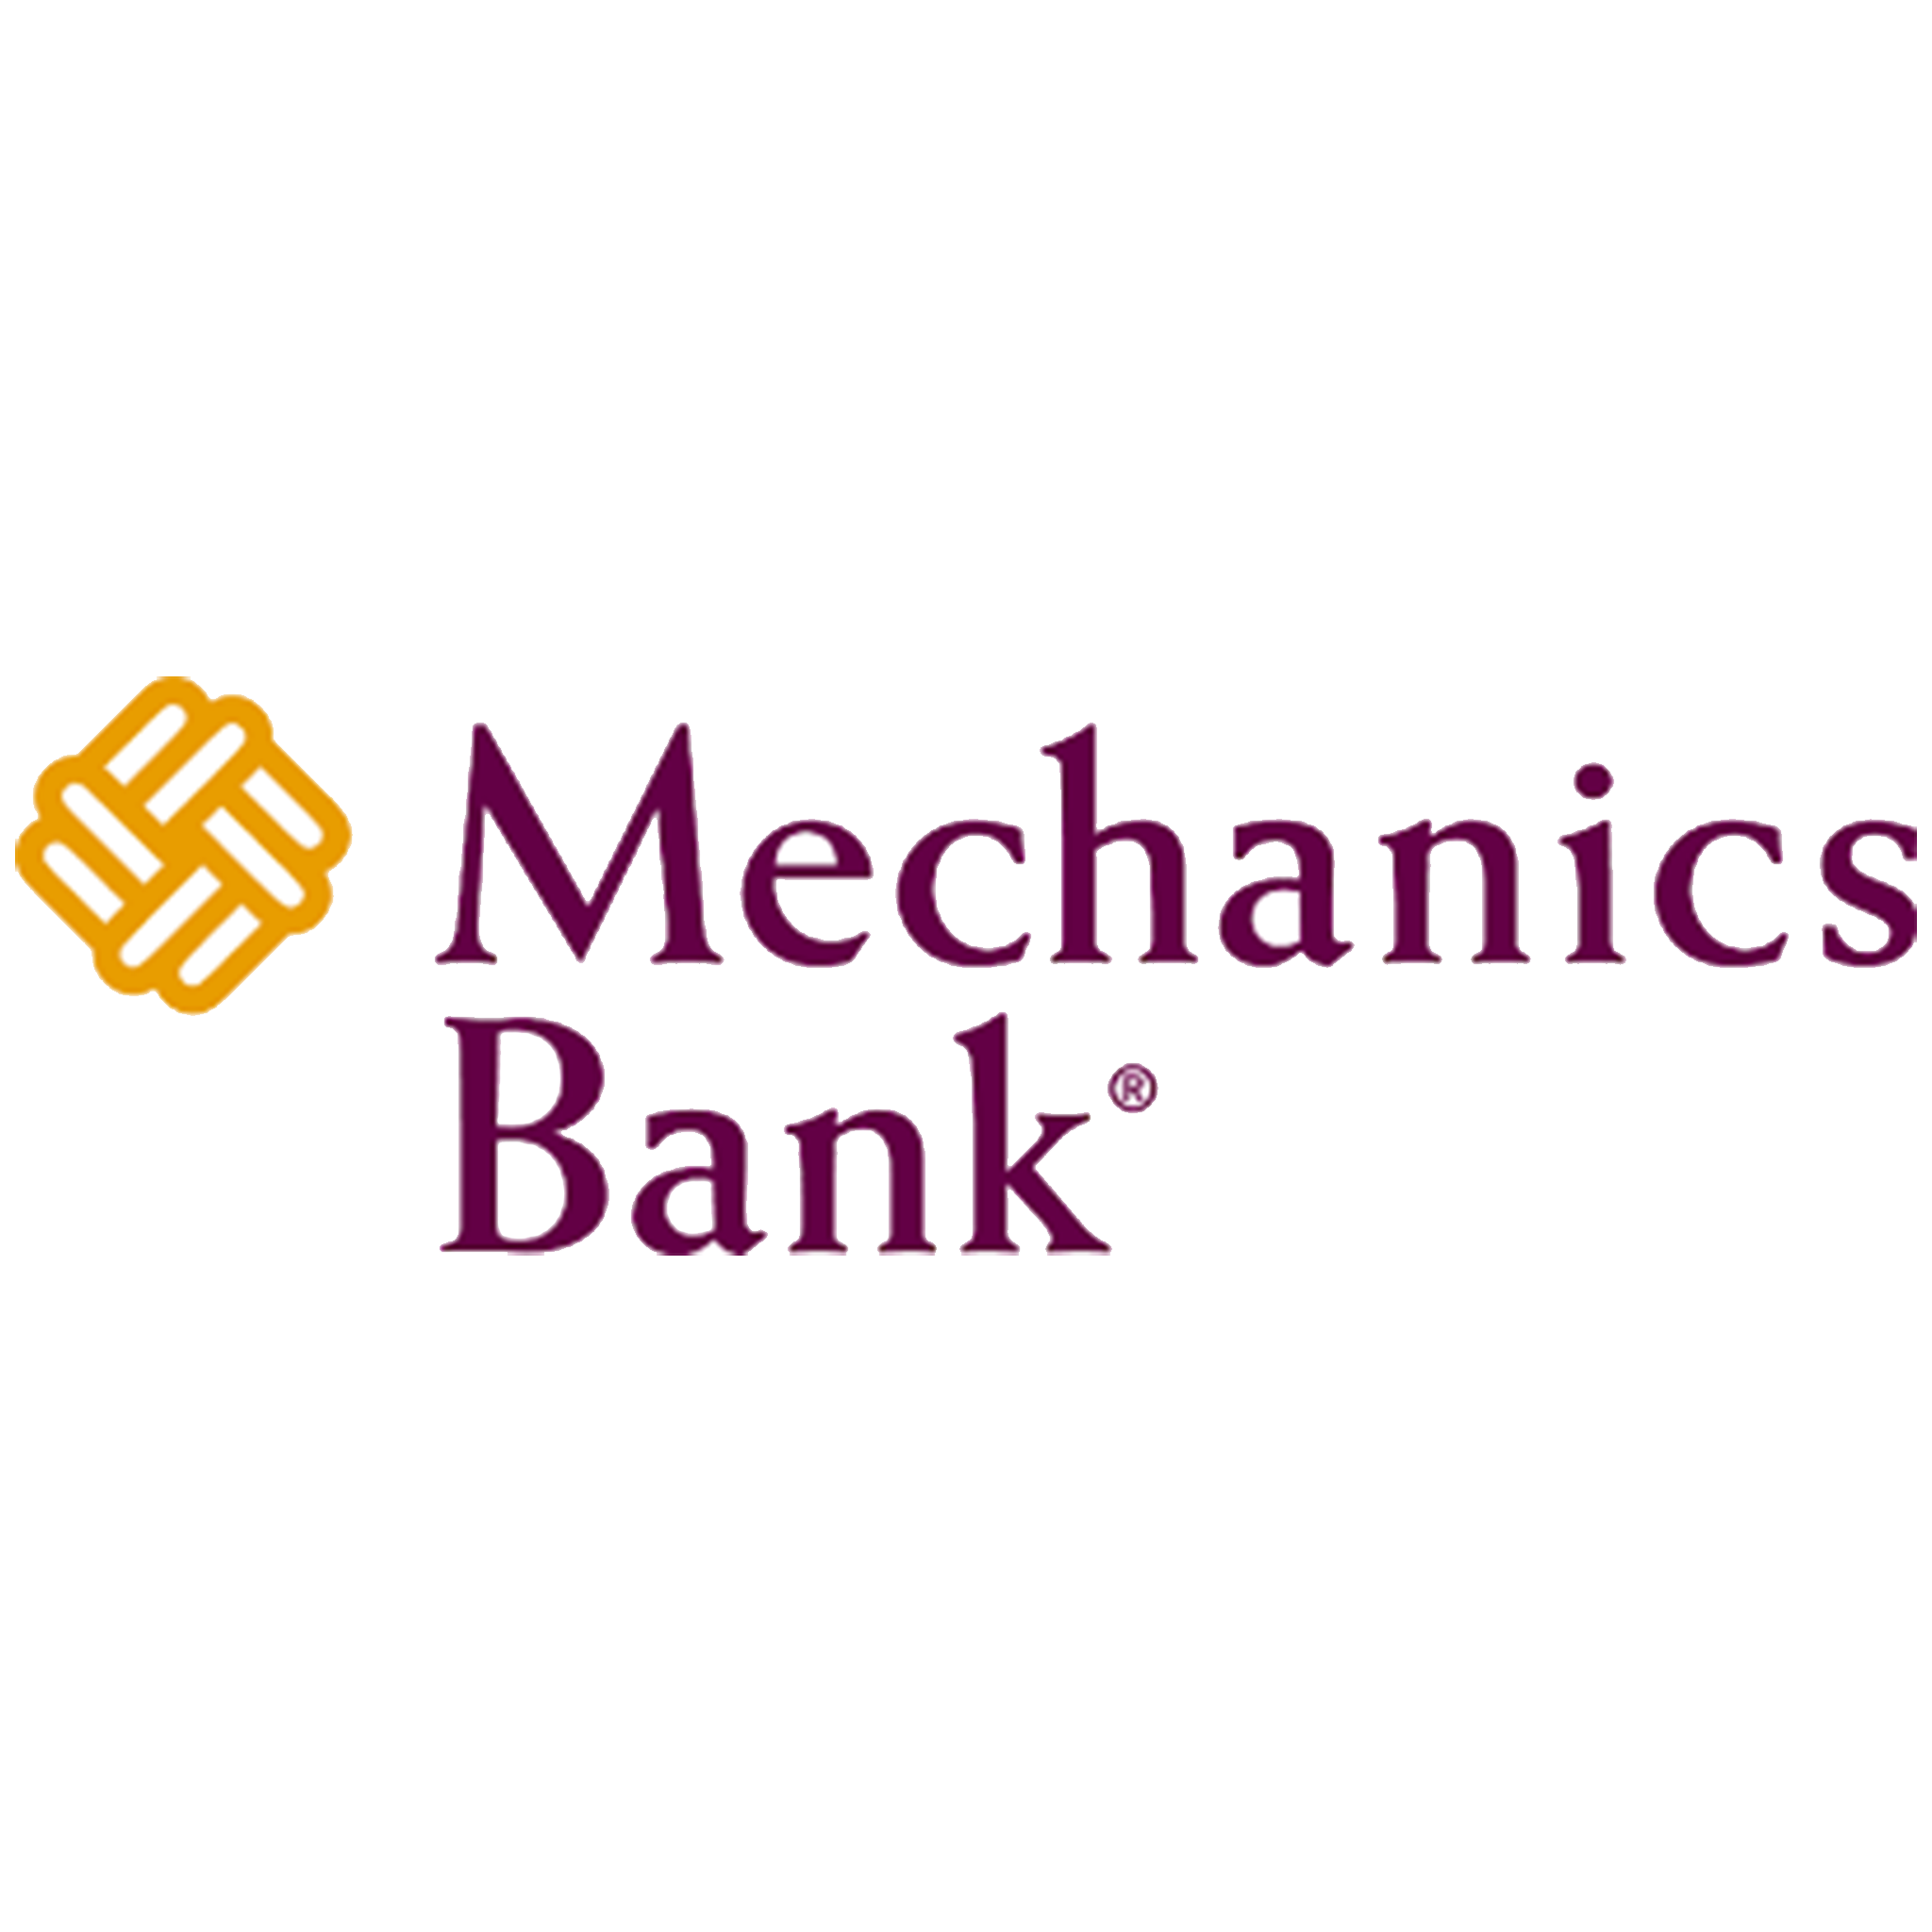 mechanicsbank.png